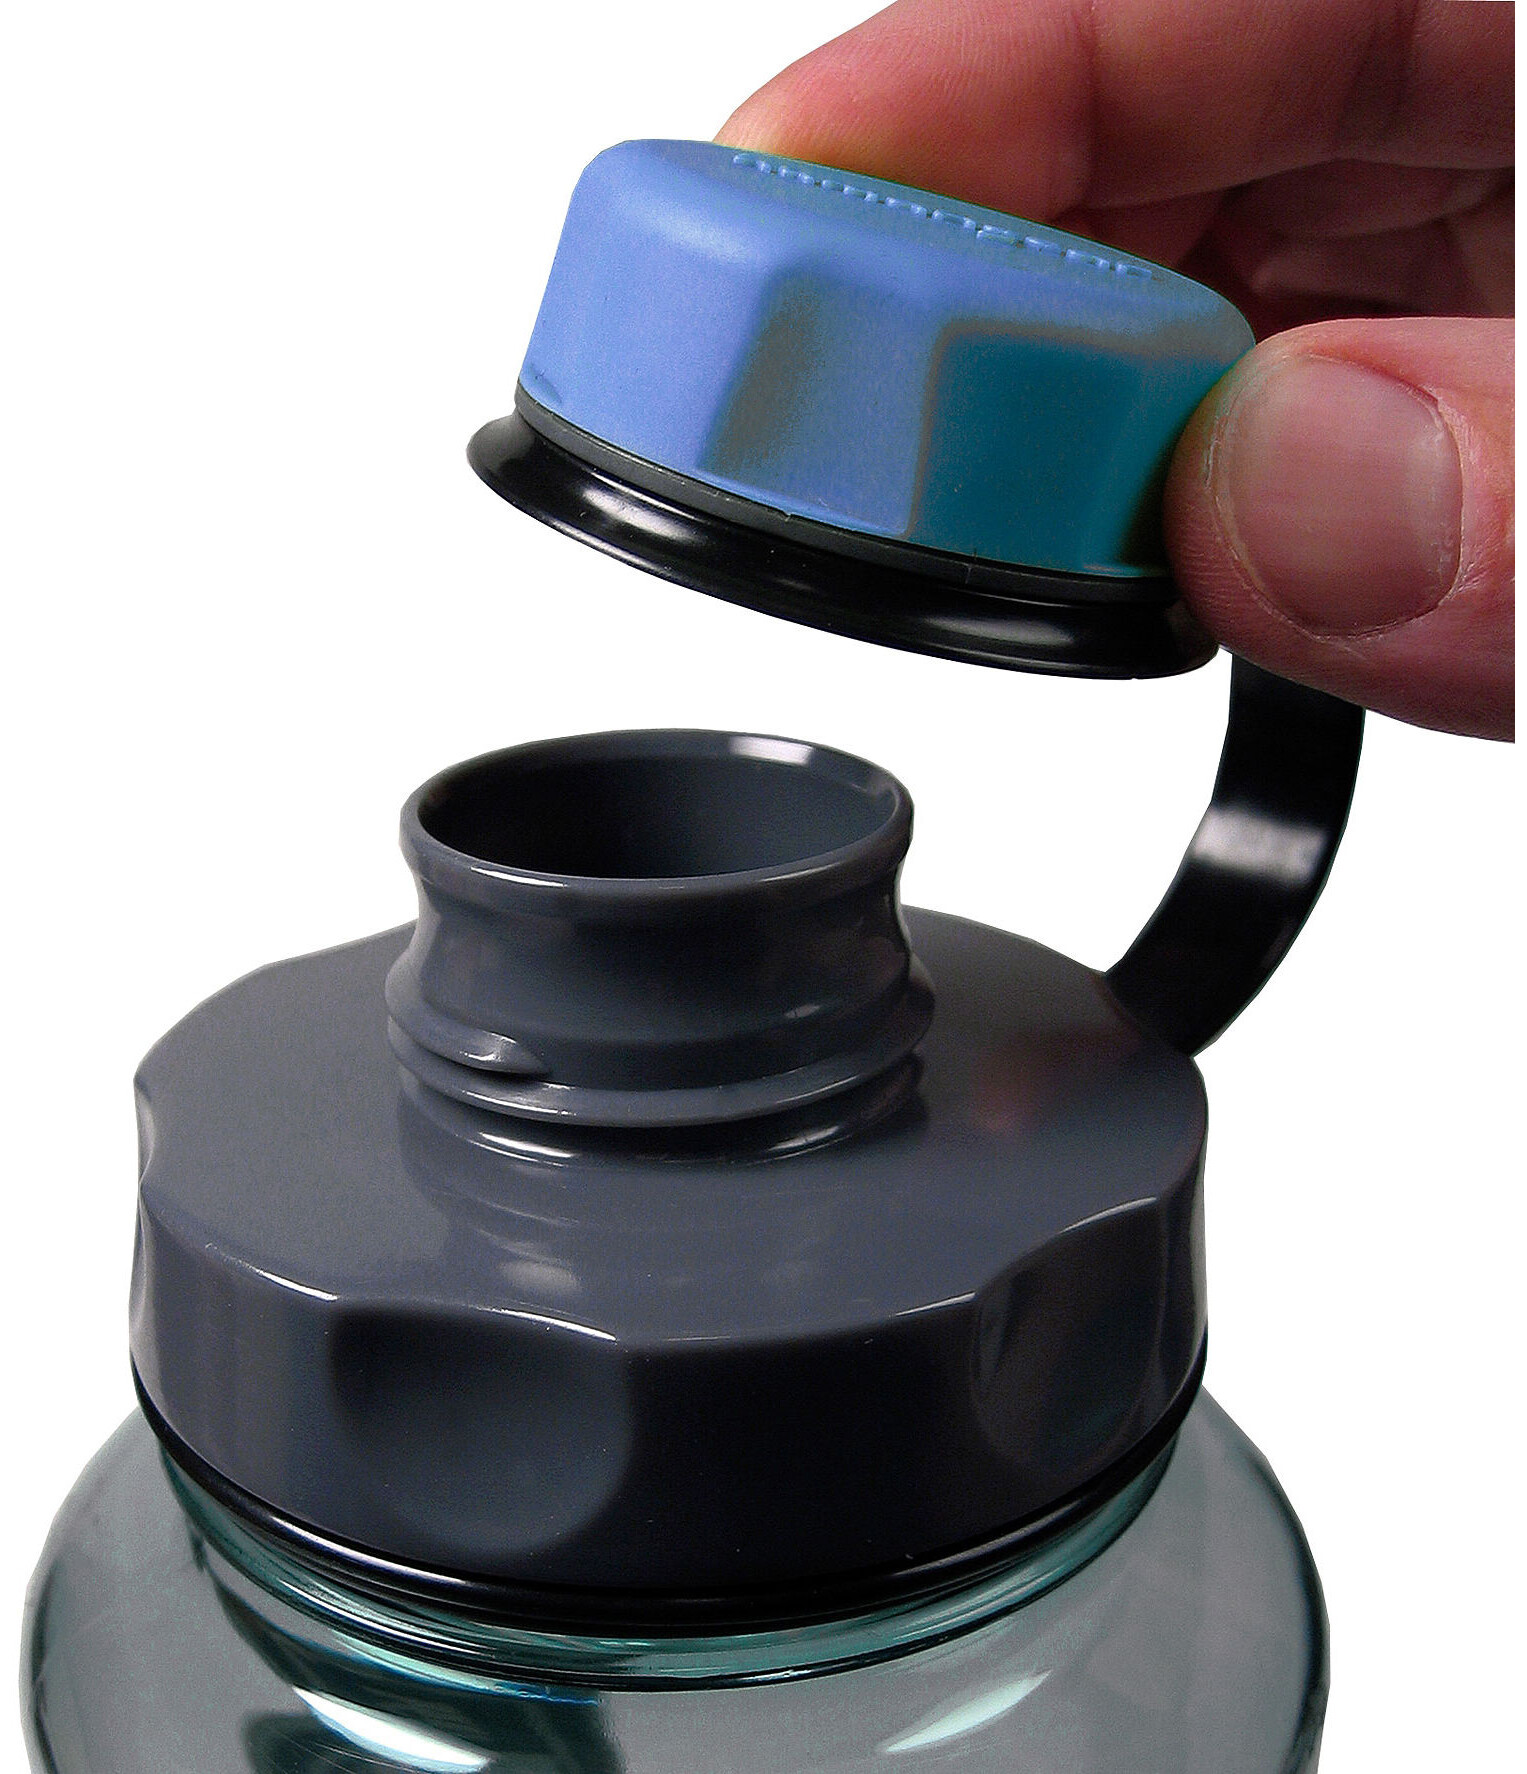 6216f3fa899 humangear Drinking bottle lid capCAP green blue at Addnature.co.uk